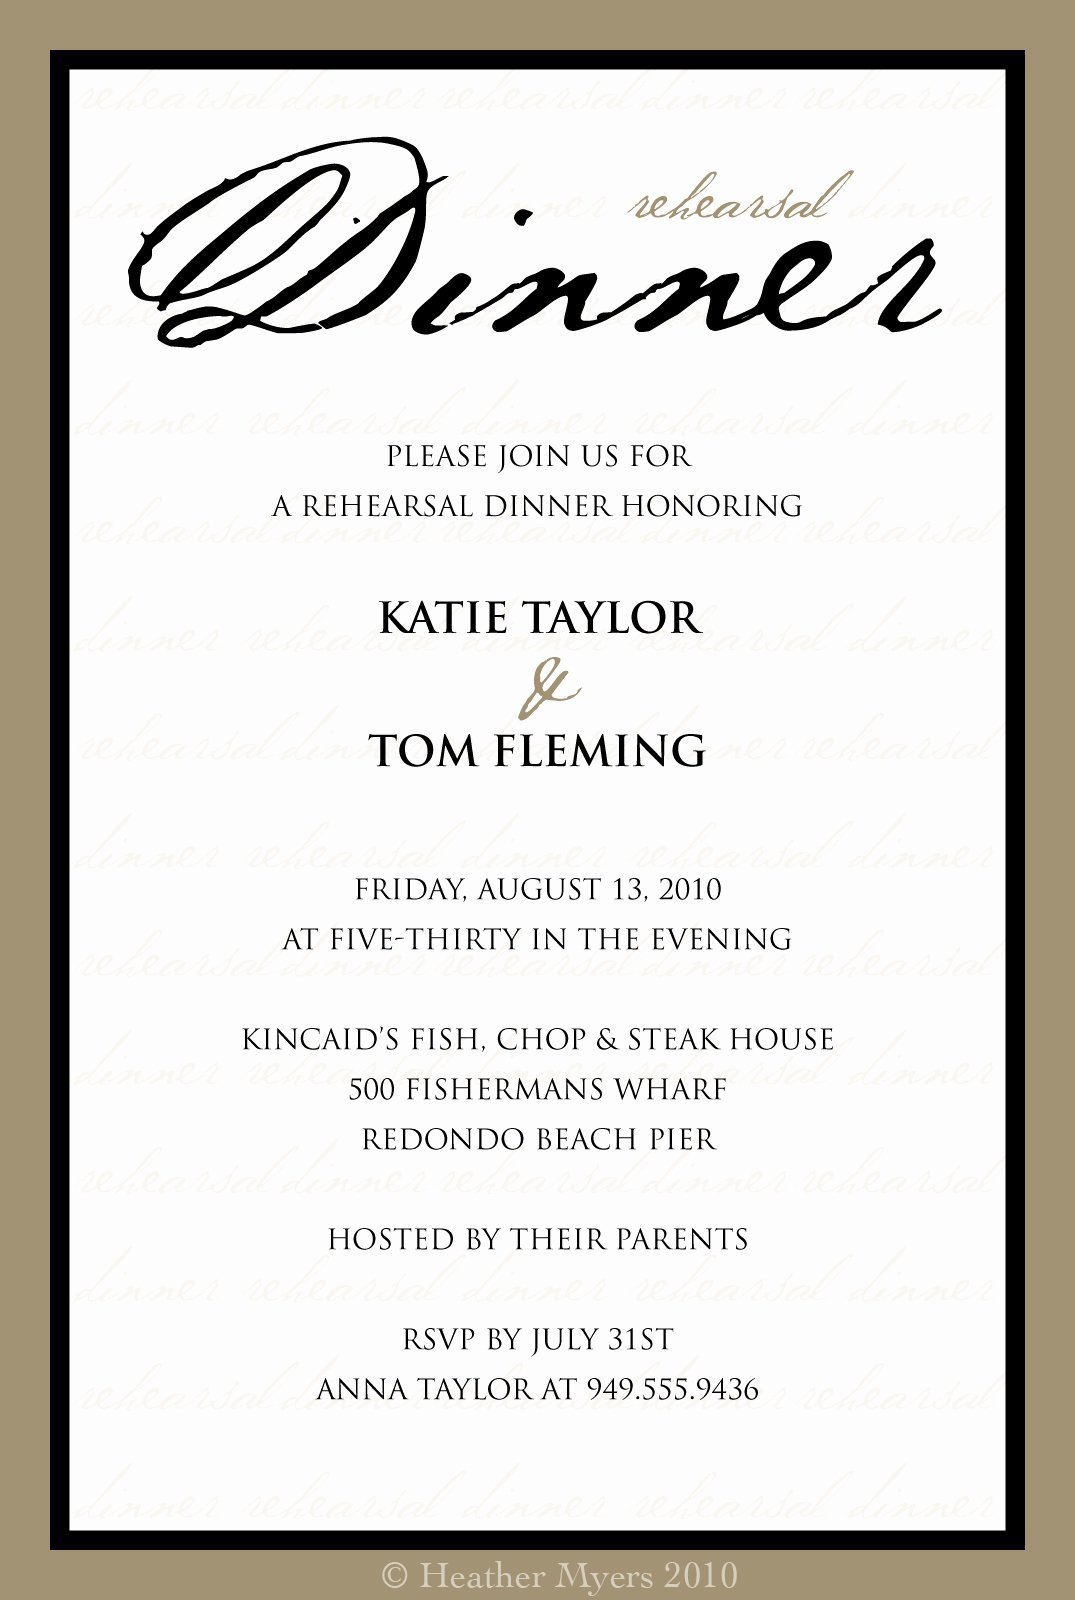 10 Best Of Dinner Invitation Template formal